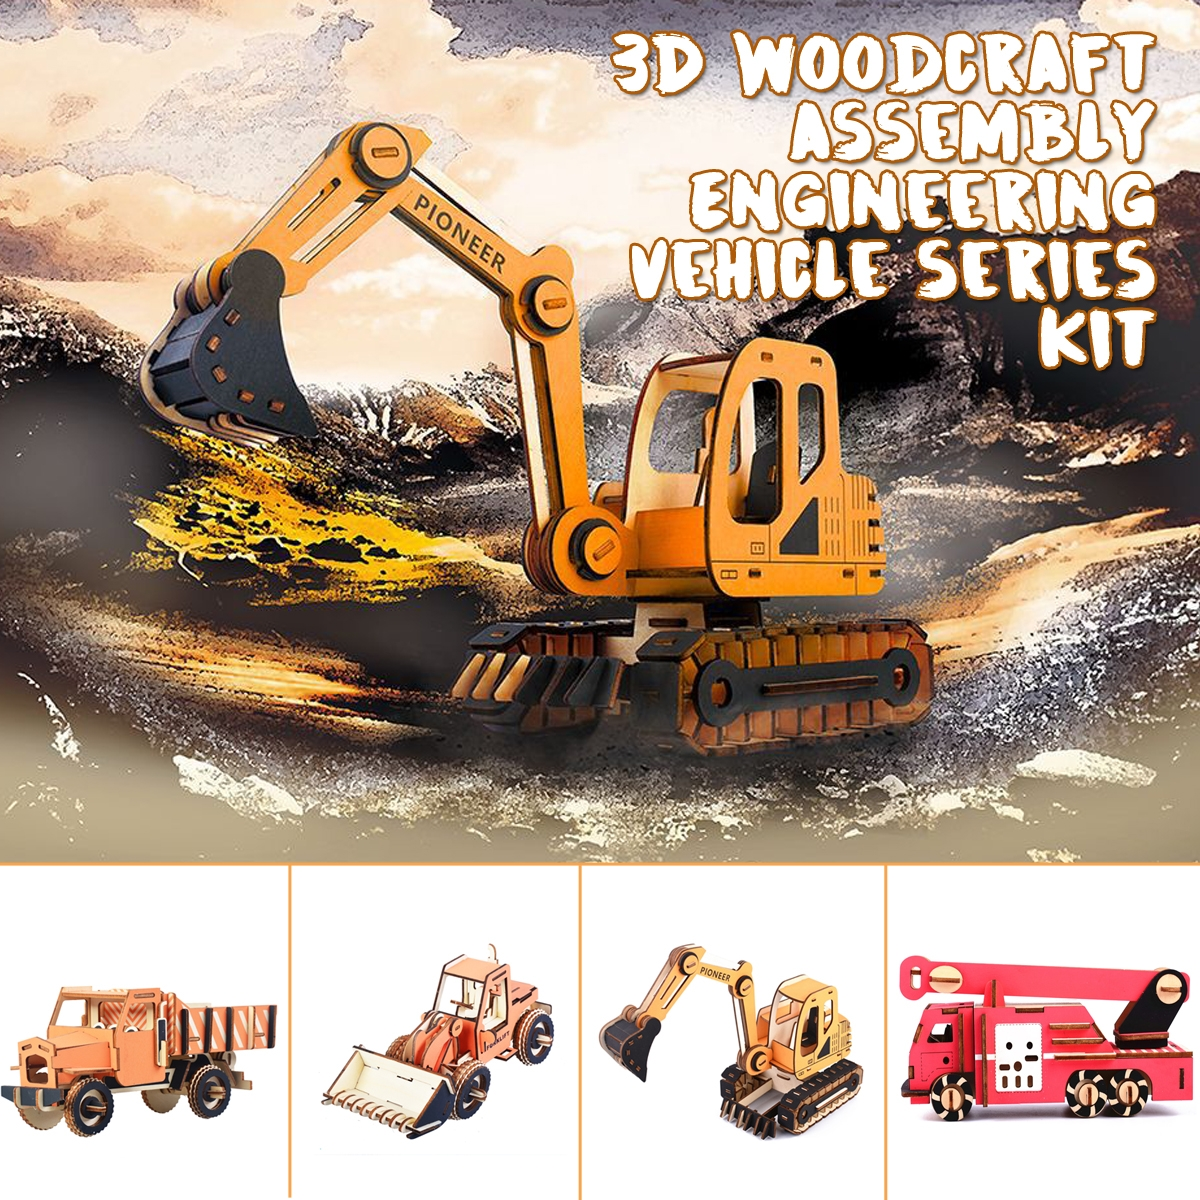 3D Woodcraft Assembly Engineering Vehicle Series Kit Jigsaw Puzzle Decoration Toy Model for Kids Gift